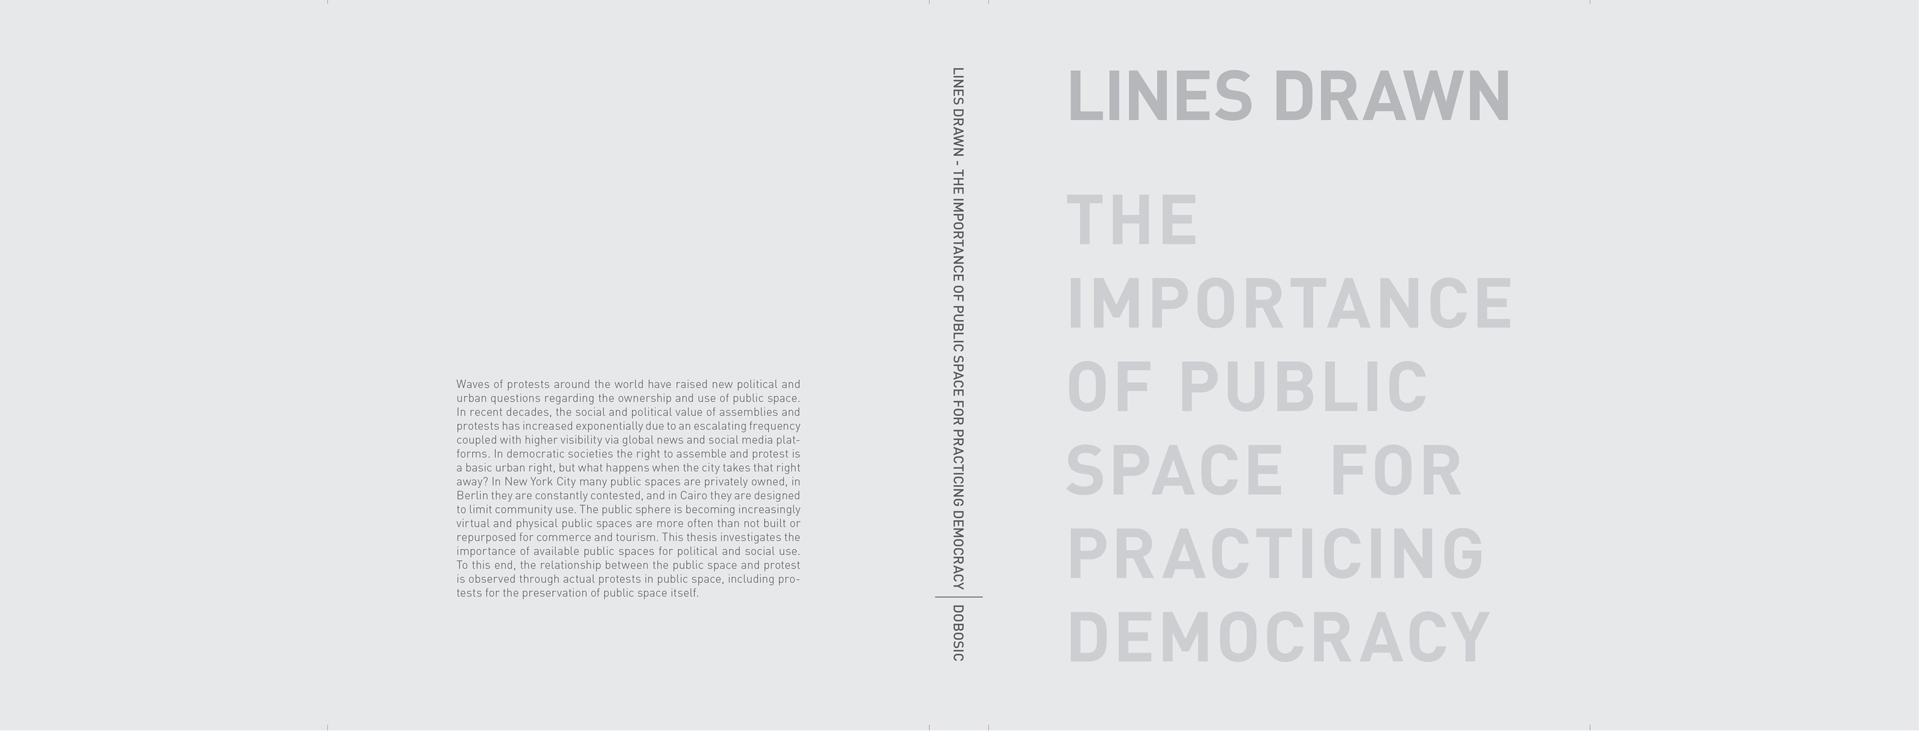 THE IMPORTANCE OF PUBLIC SPACE FOR PRACTICING DEMOCRACY